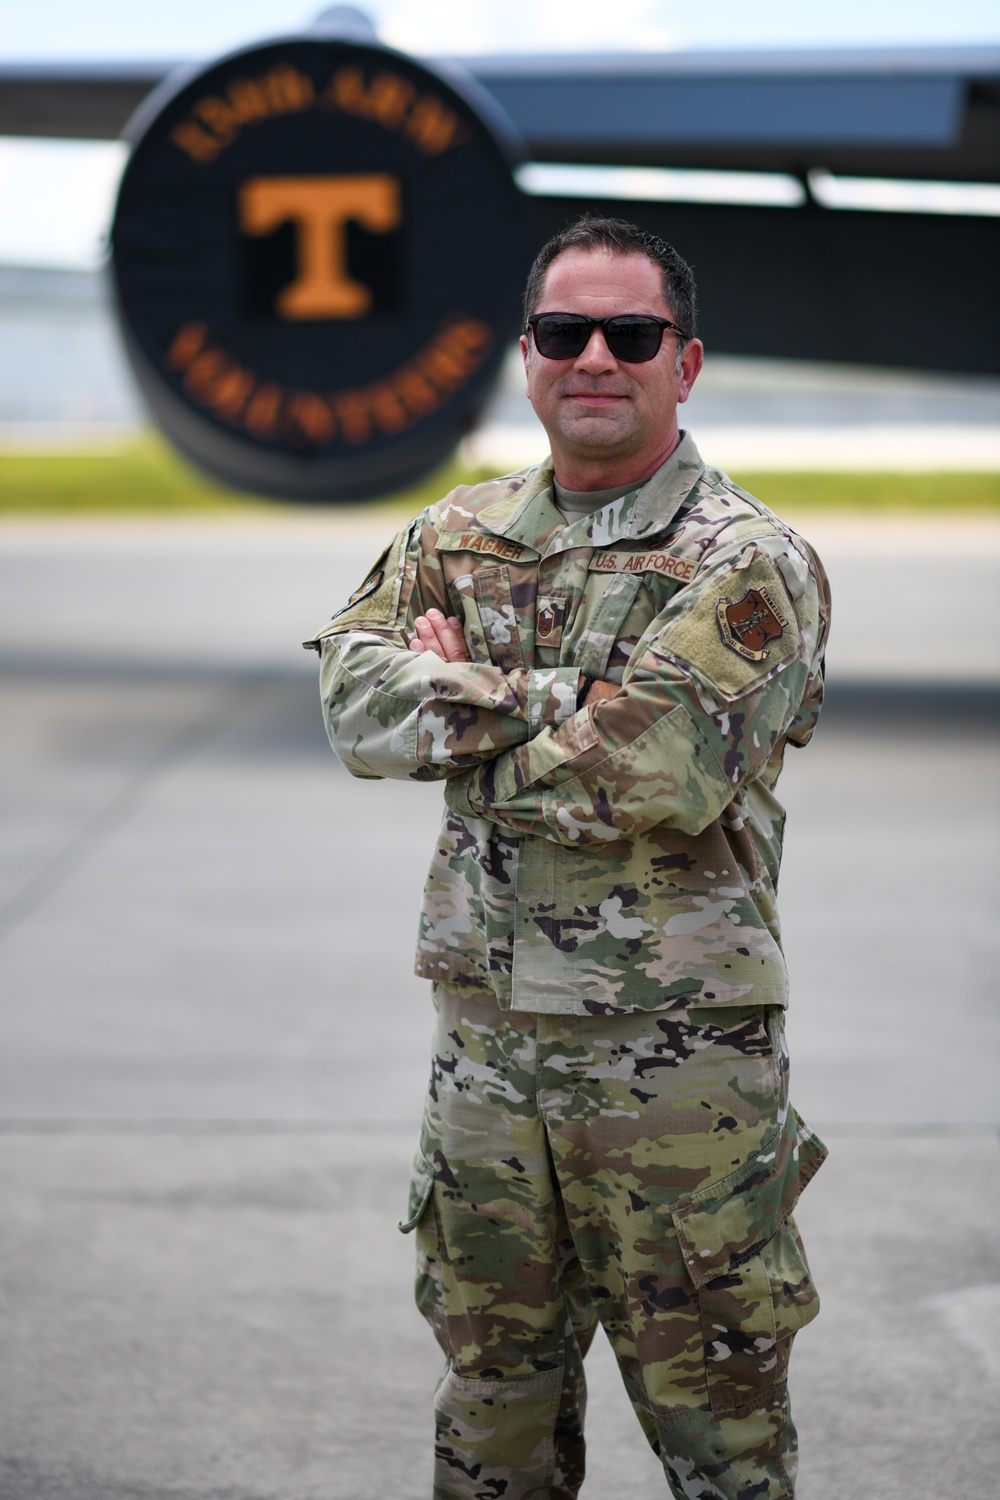 134th CPTF MSgt Wagner Portrait